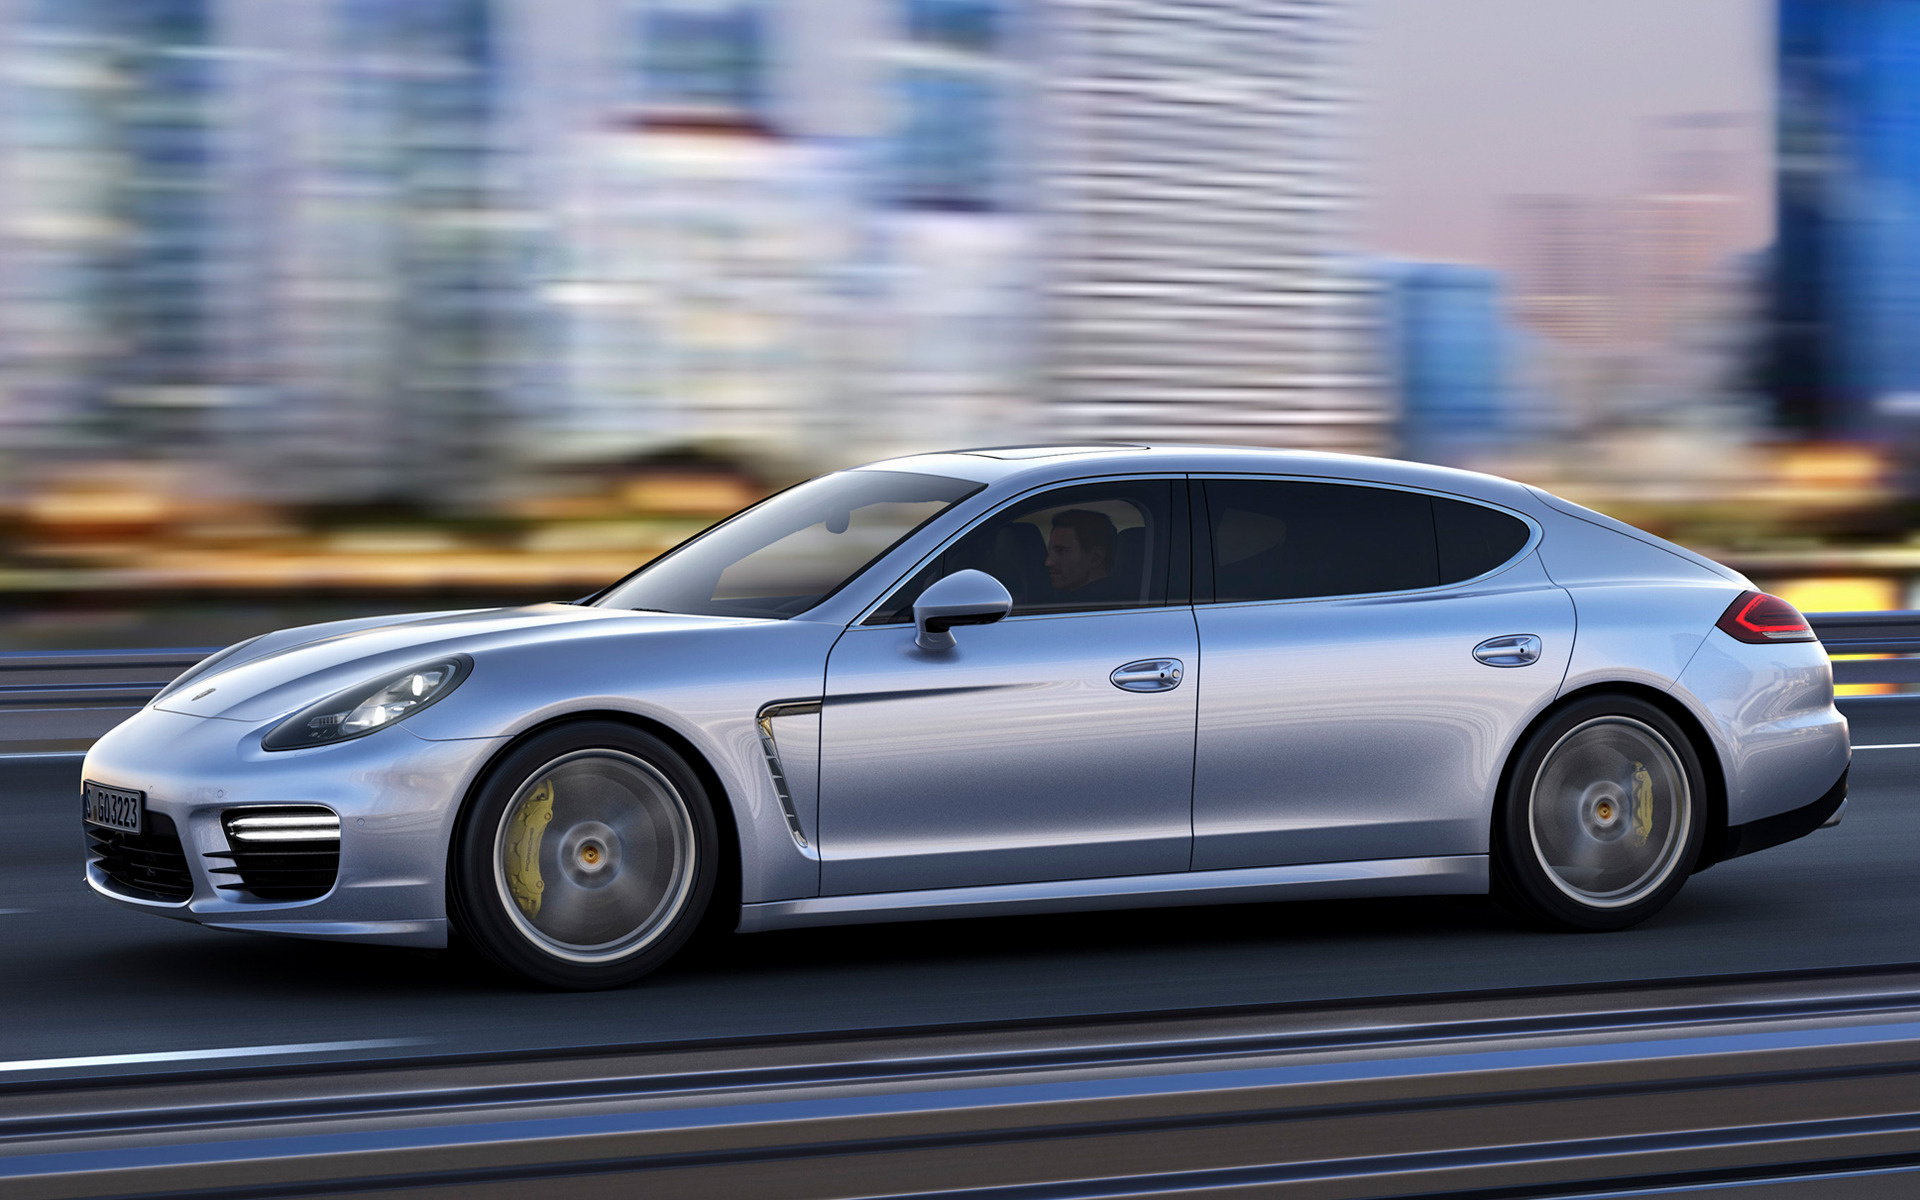 Porsche Panamera Turbo 2013 photo - 9